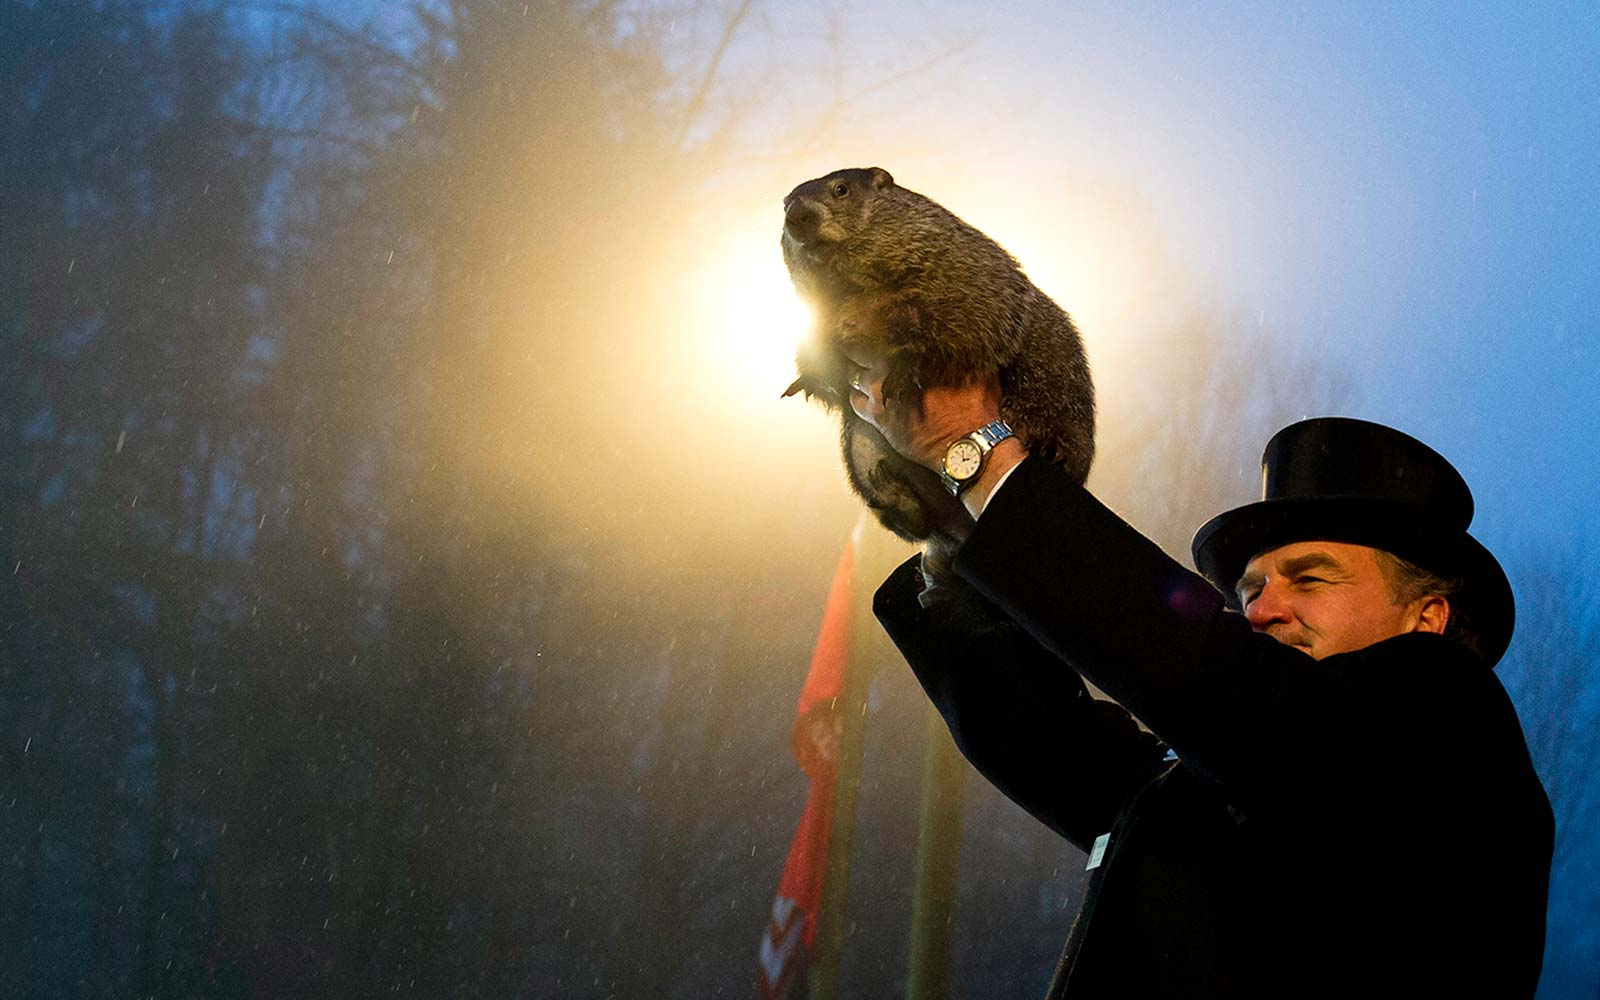 Groundhog Day 2018 Prediction: Will Phil See His Shadow?